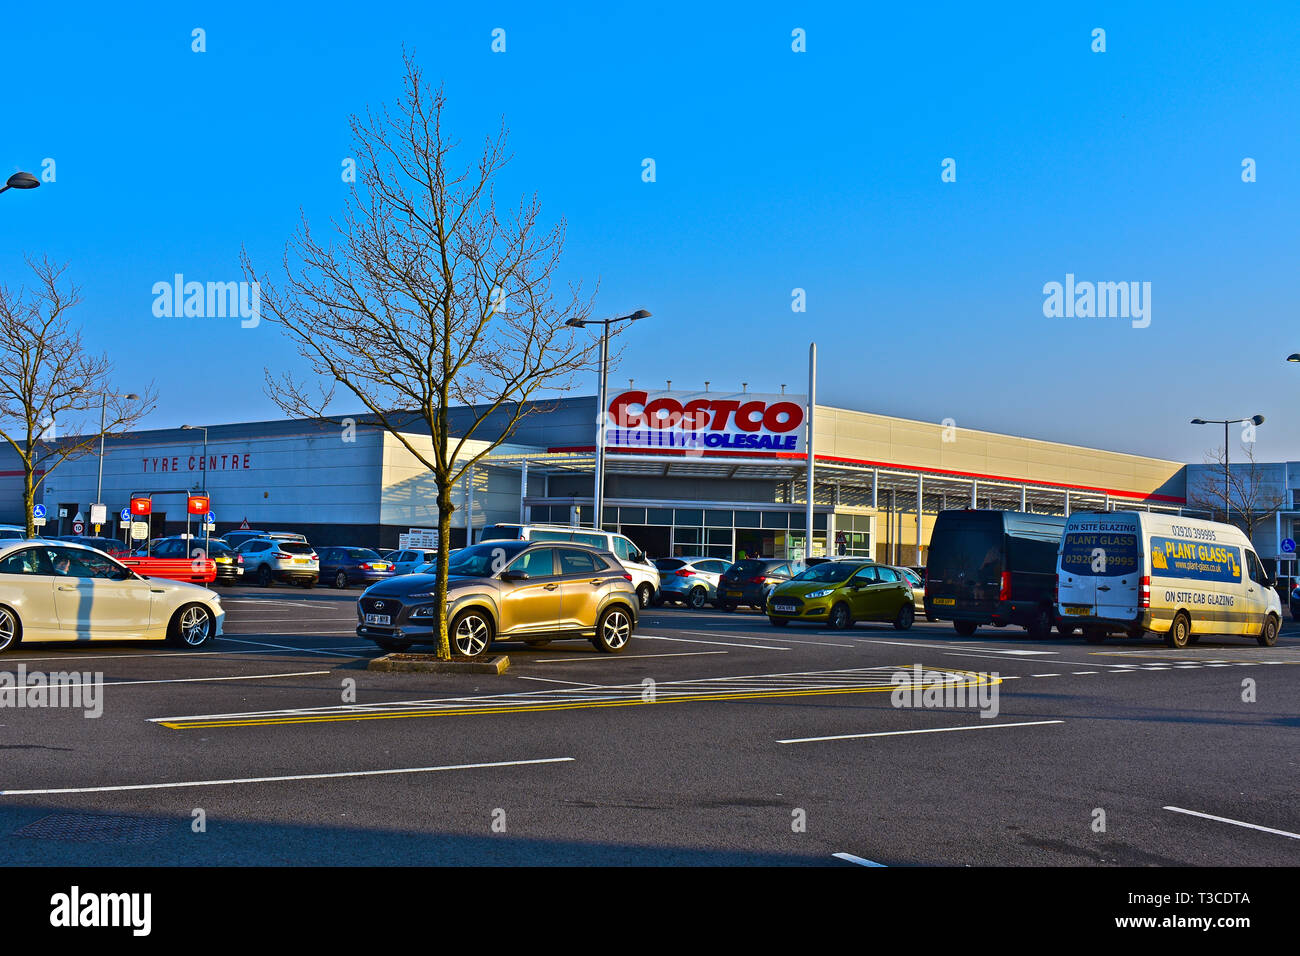 The front entrance to the Cardiff Costco store, a wholesale warehouse for food, electrical & other goods. Open to trade & members only. - Stock Image